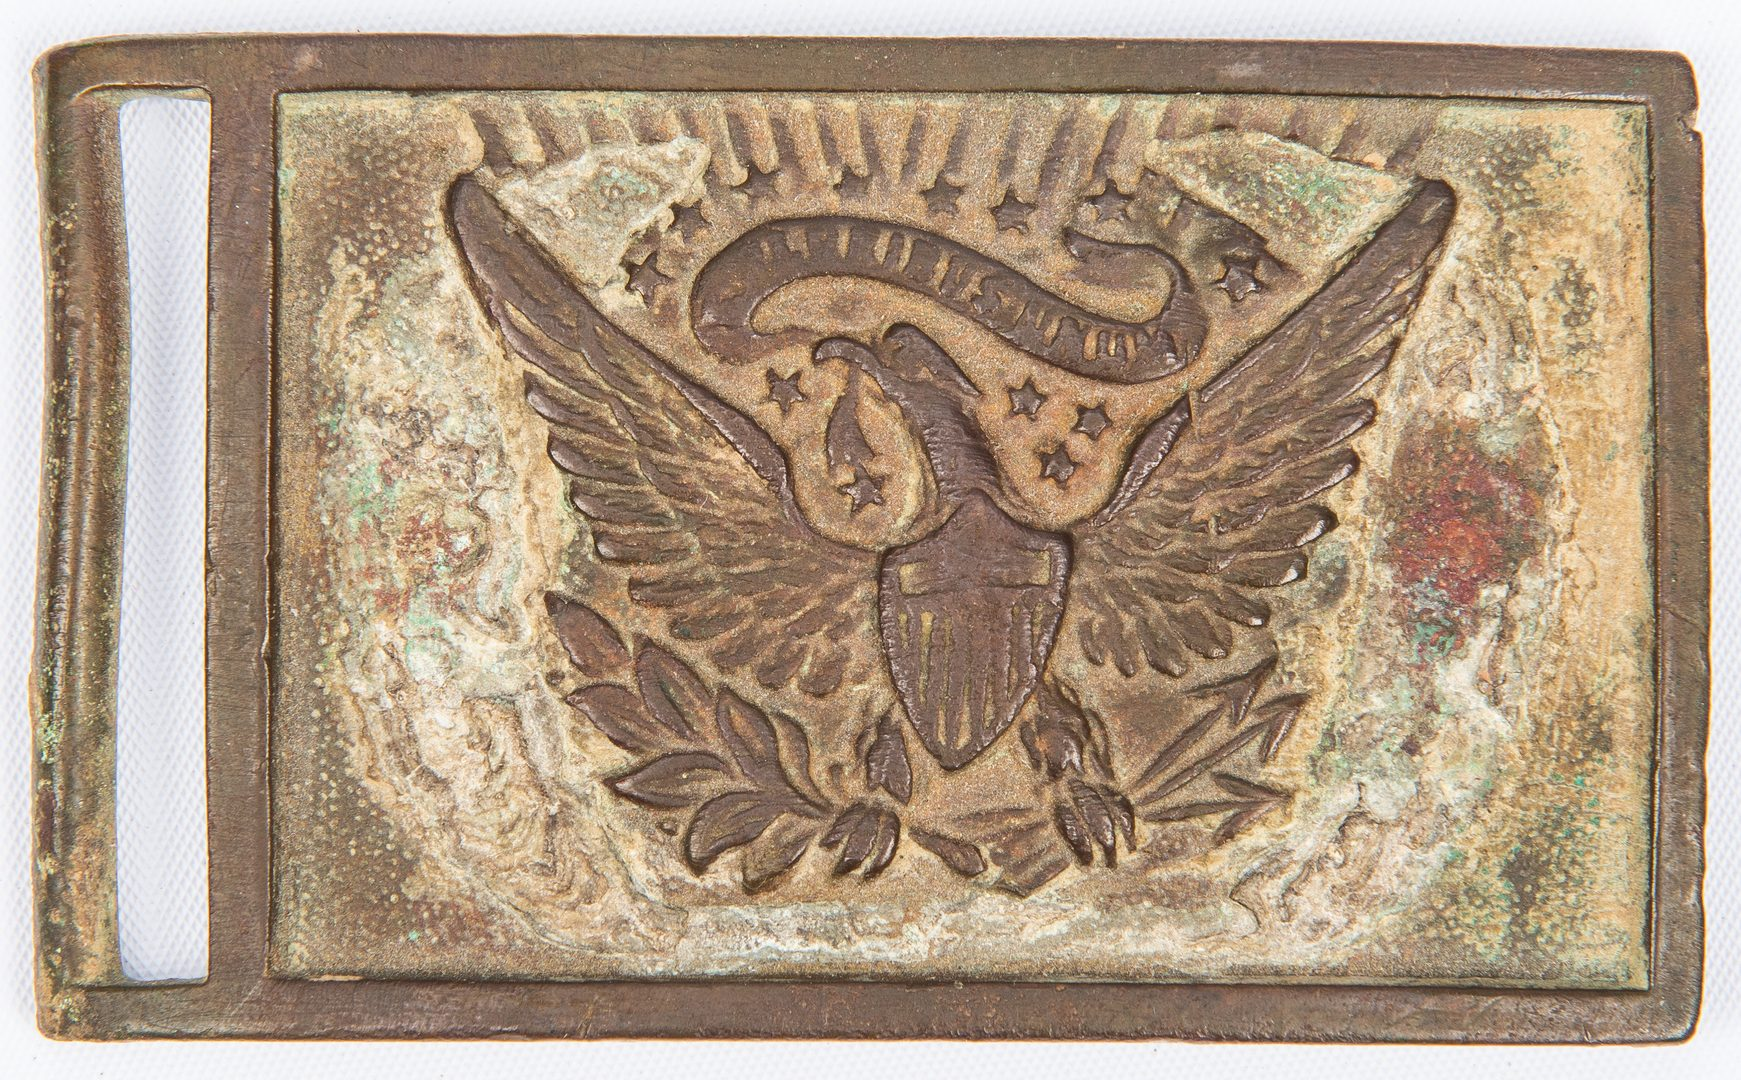 Lot 285: McKinley signed doc, Semmes CDVs, and Buckle